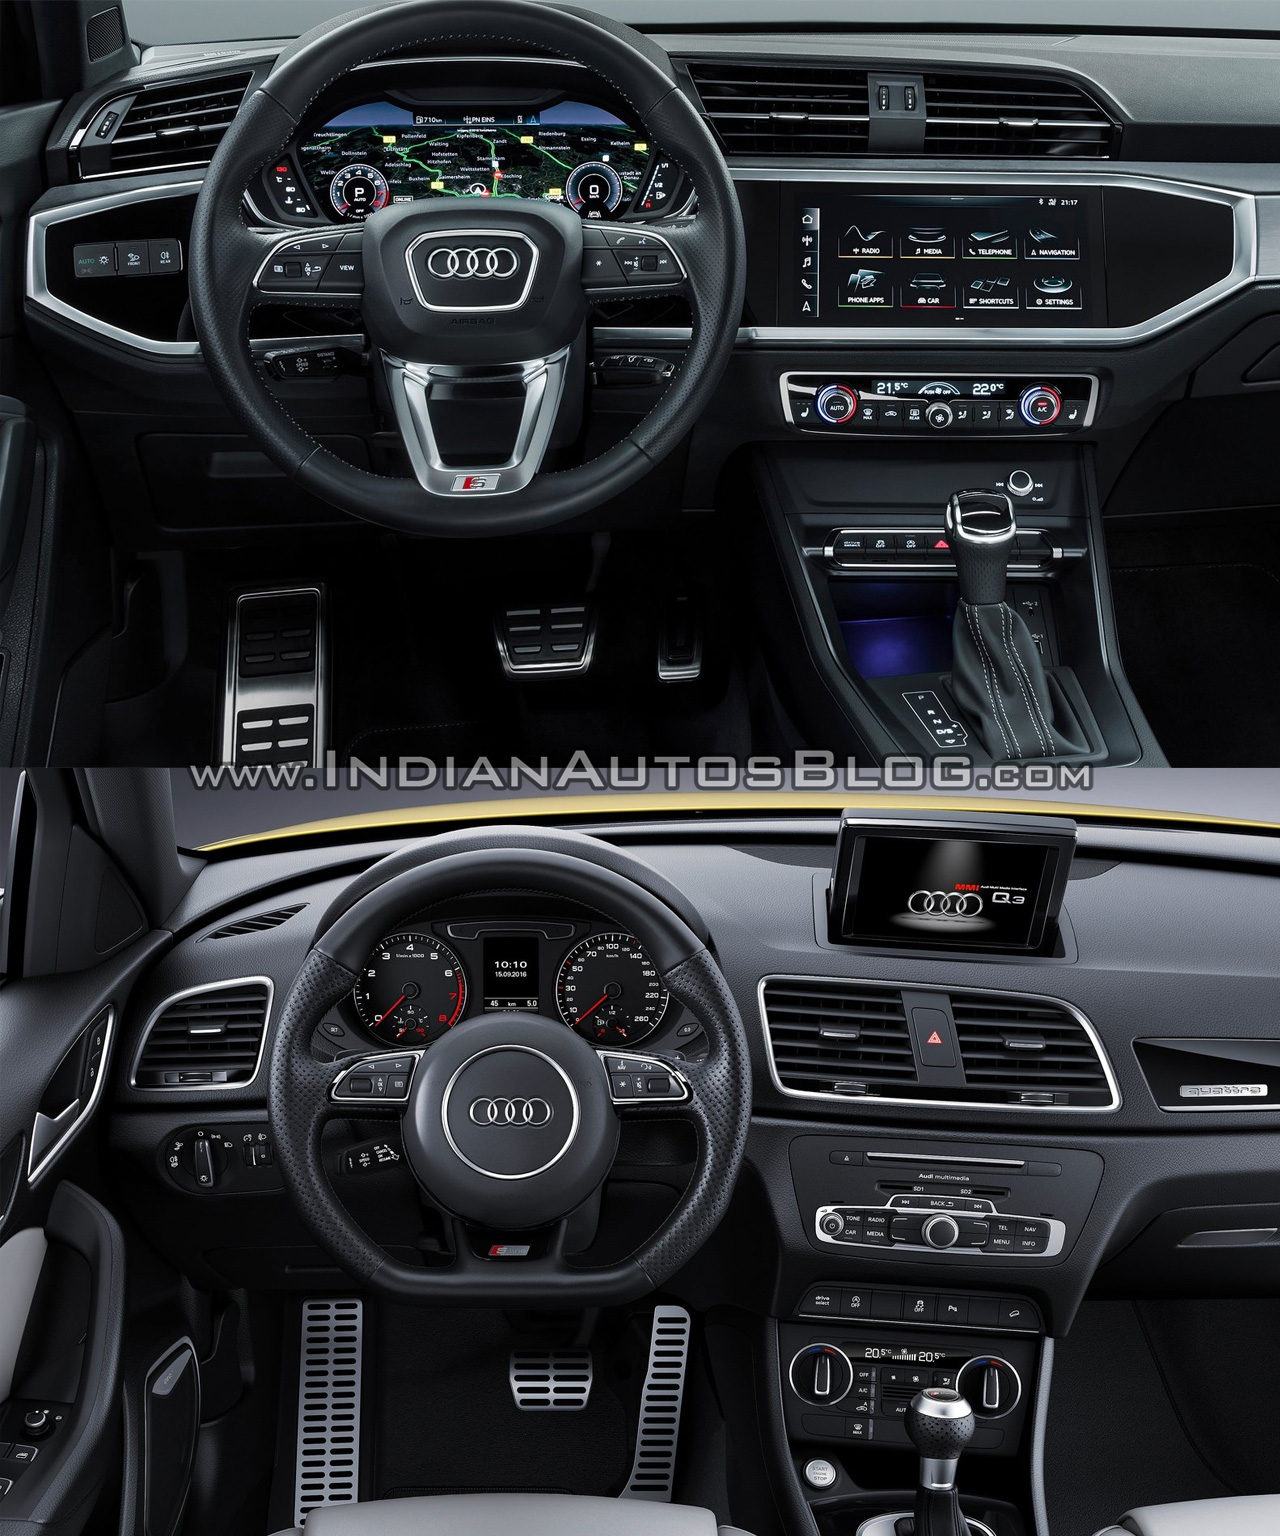 2019 audi q3 vs 2015 audi q3 old vs new. Black Bedroom Furniture Sets. Home Design Ideas